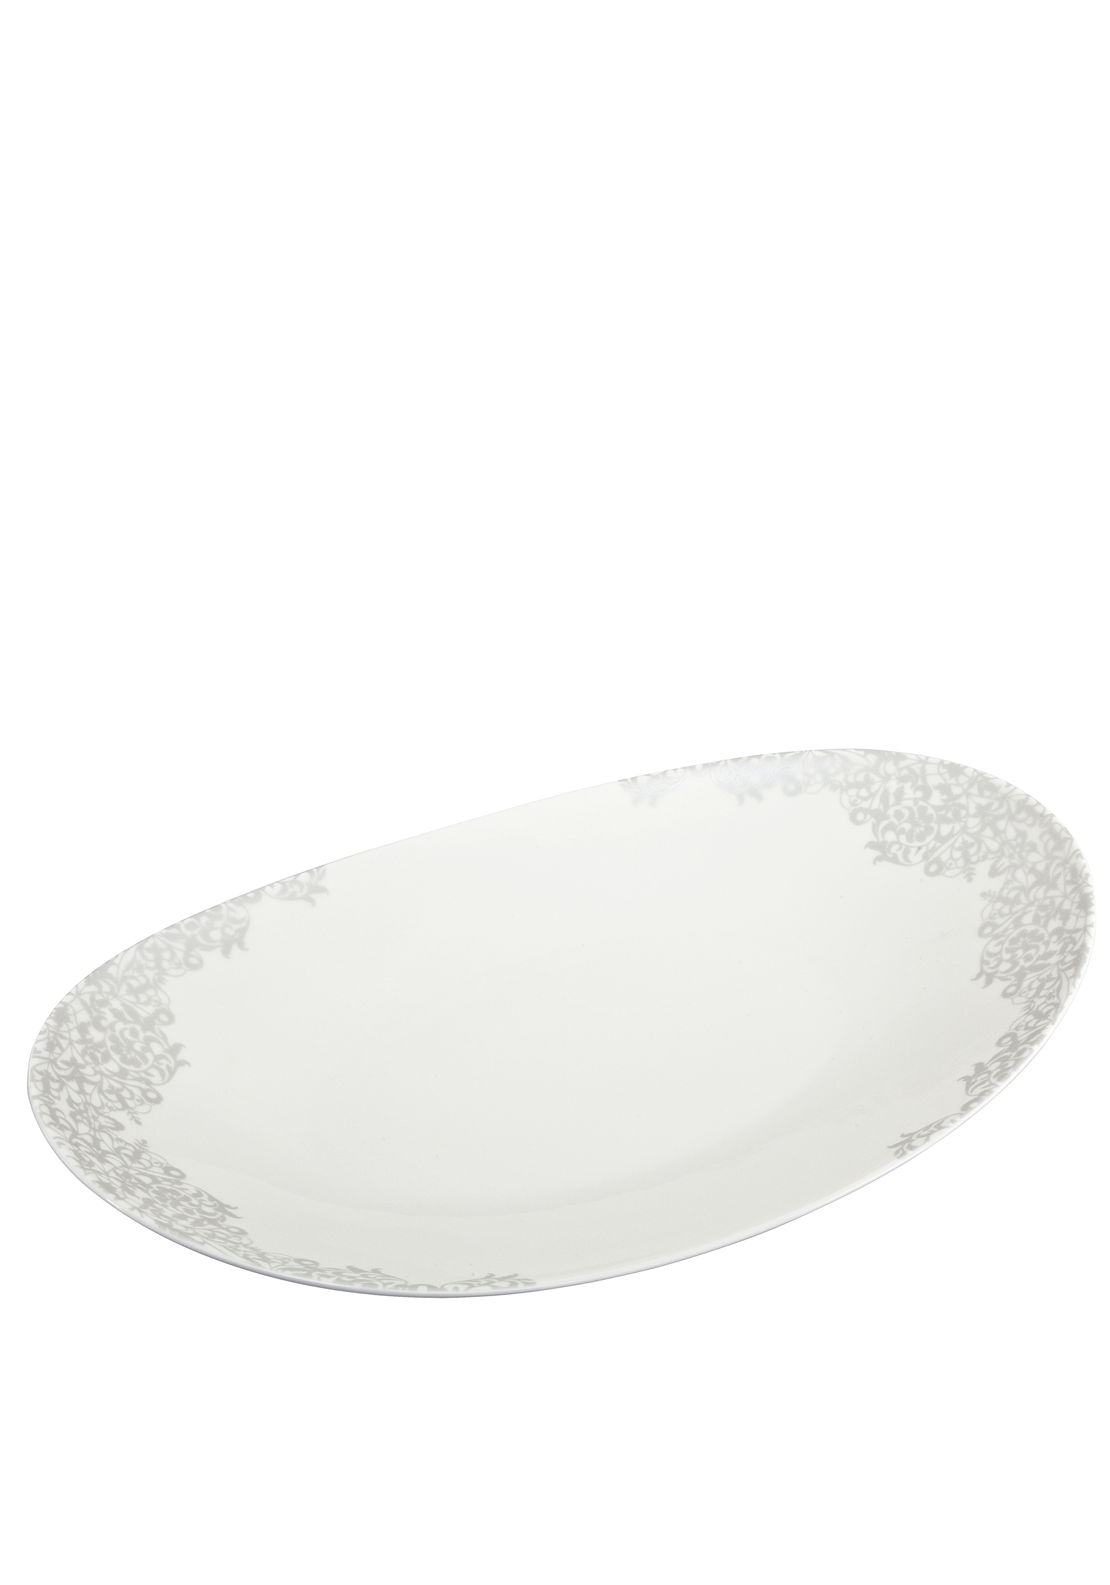 Denby Monsoon Filigree Large Oval Platter, Silver